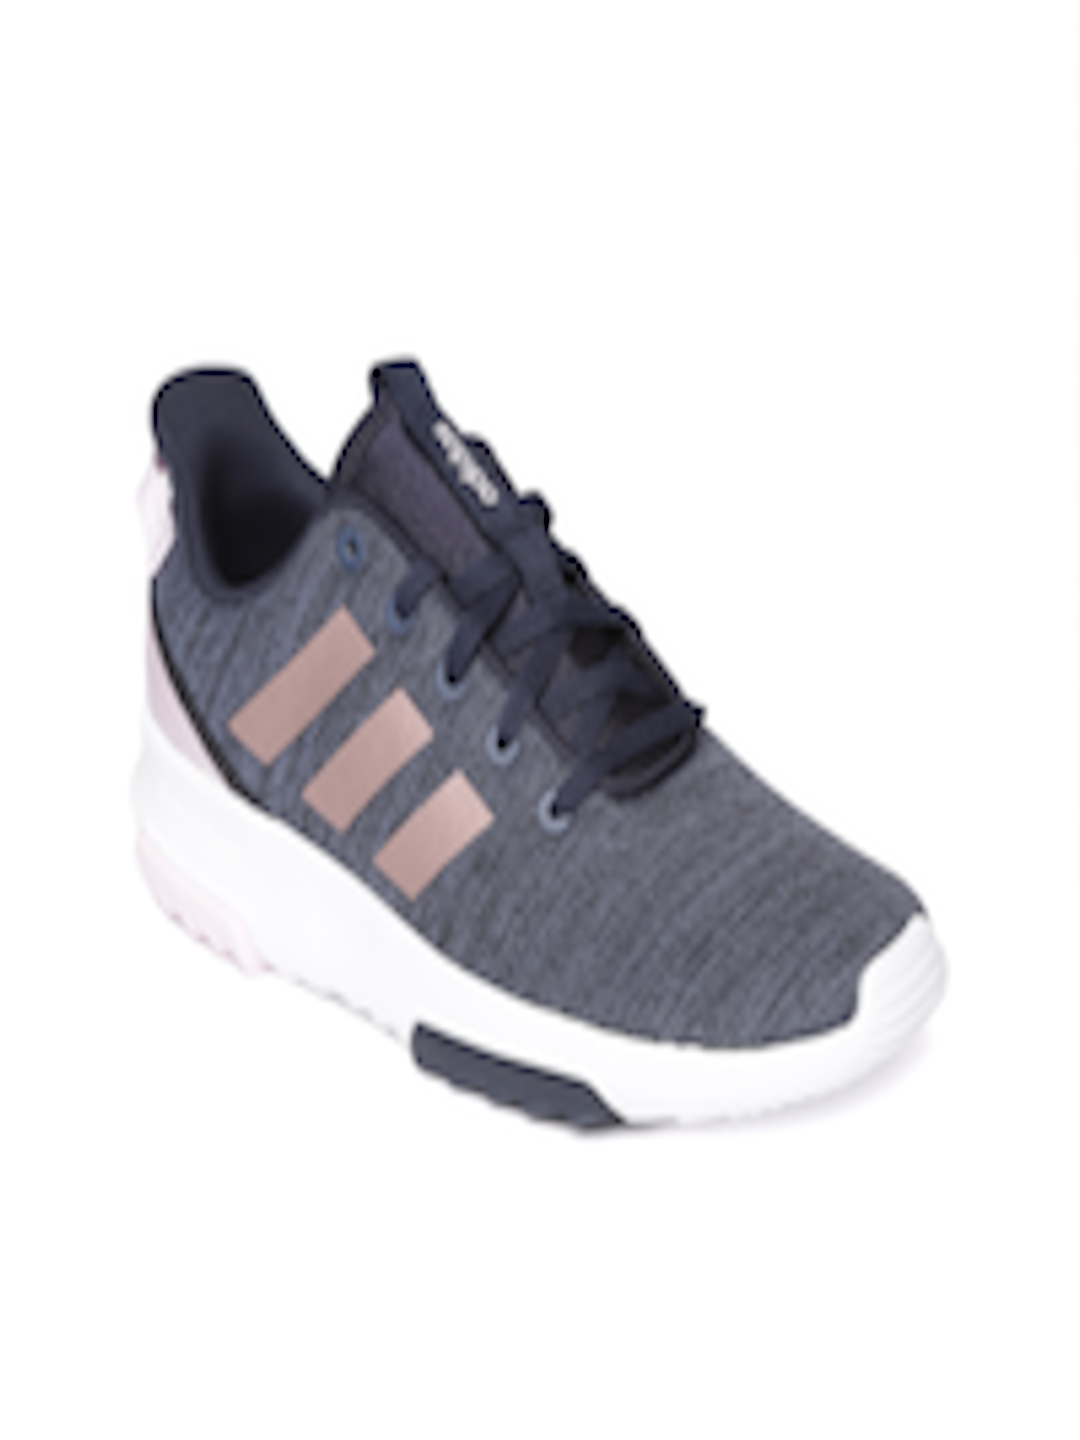 2bcabd6865d2e5 Buy ADIDAS Kids Navy CF Racer TR Running Shoes - Sports Shoes for Unisex  6841688